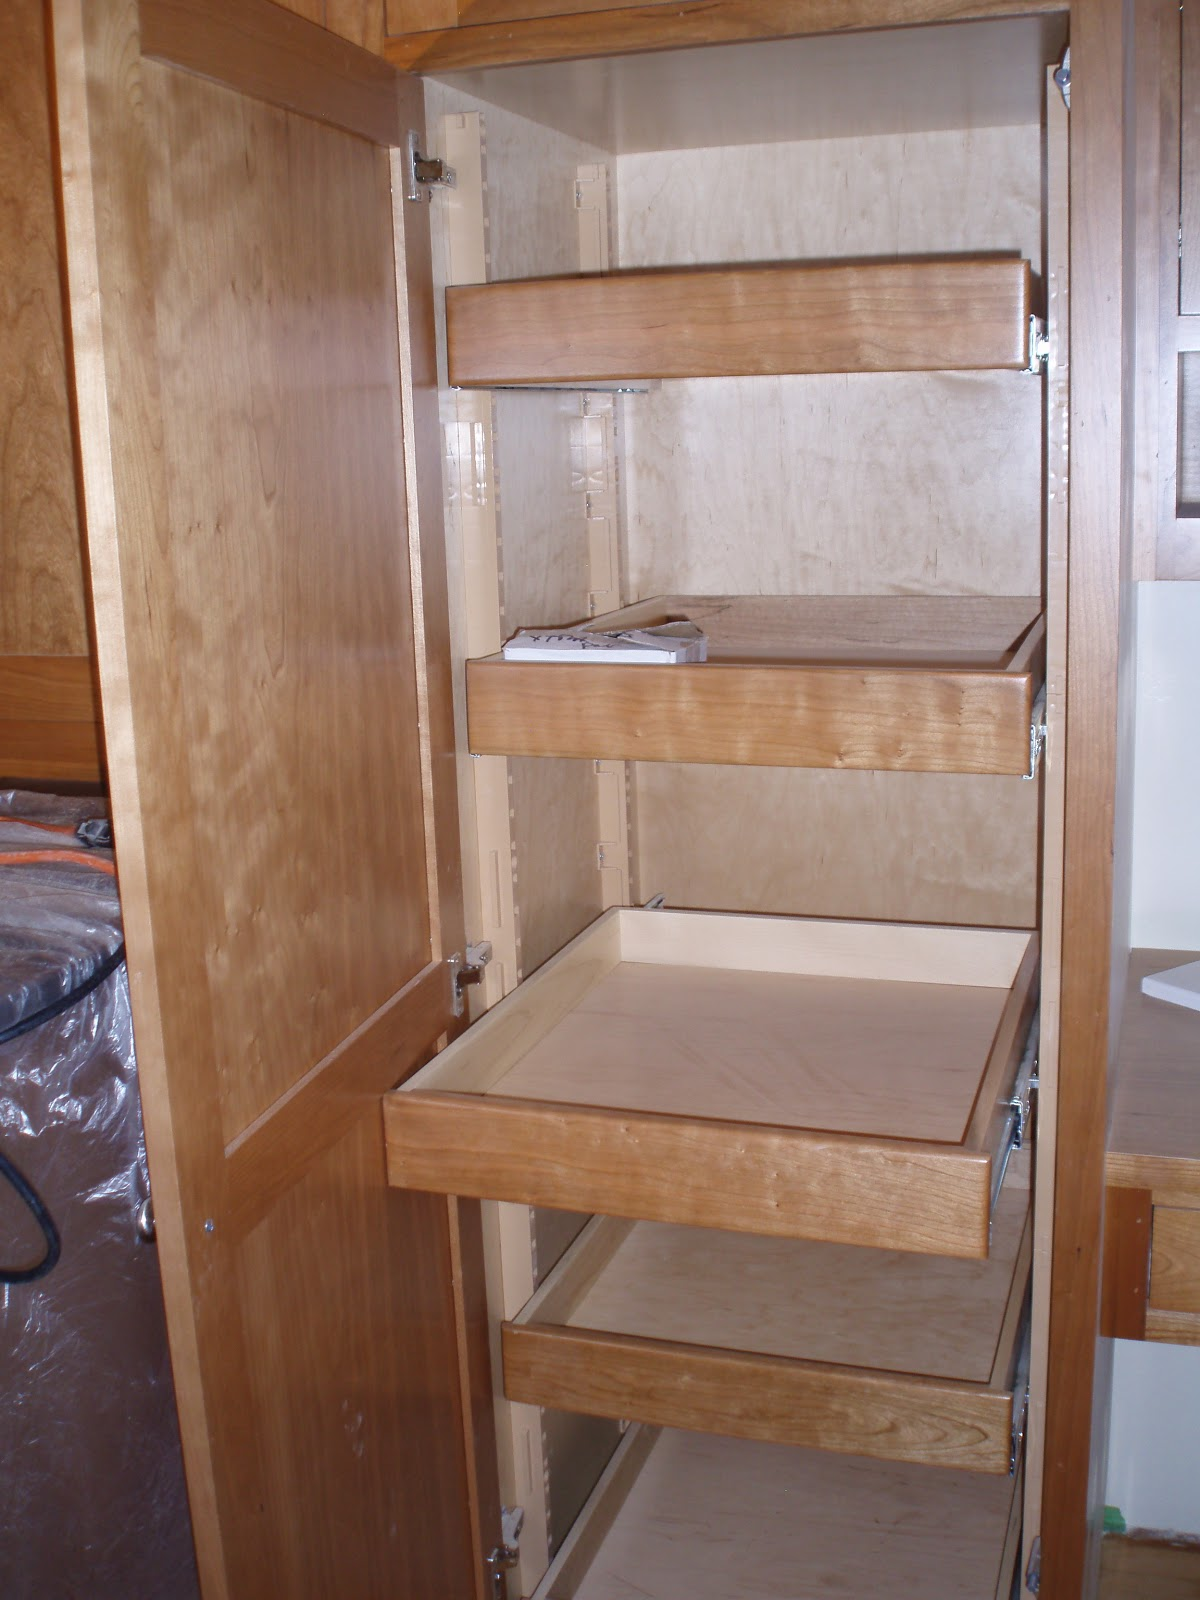 Kitchen Pantry Drawer Systems Best Appliances With Pull Out Drawers House Project Pinterest